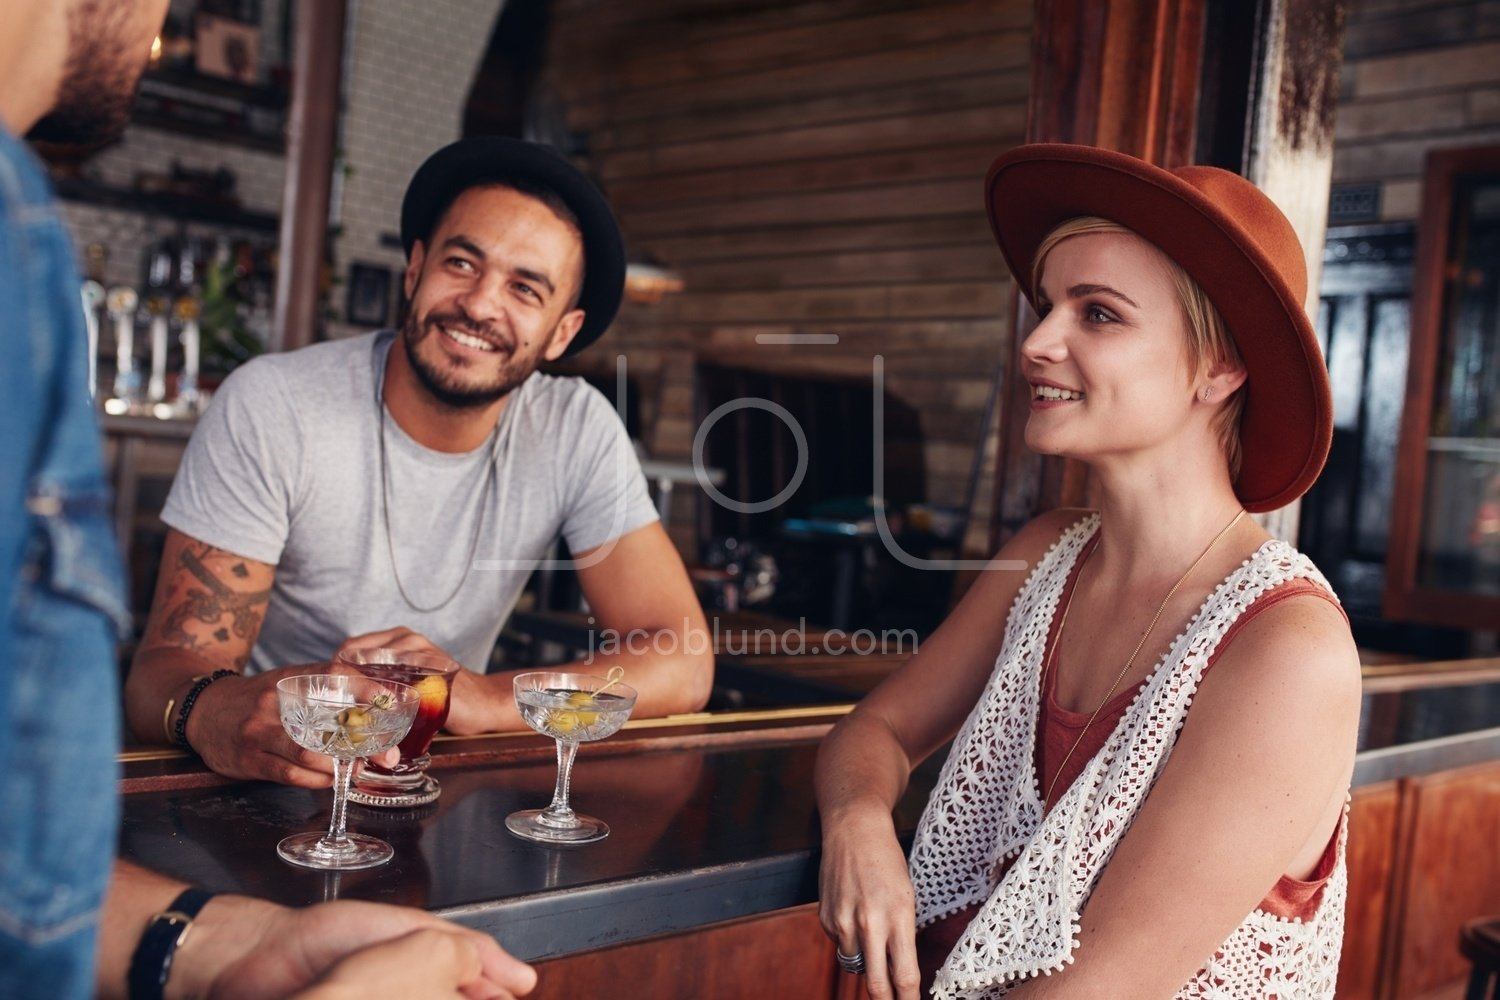 Group Of Young People Meeting In A Cafe Jacob Lund Photography Store Premium Stock Photo